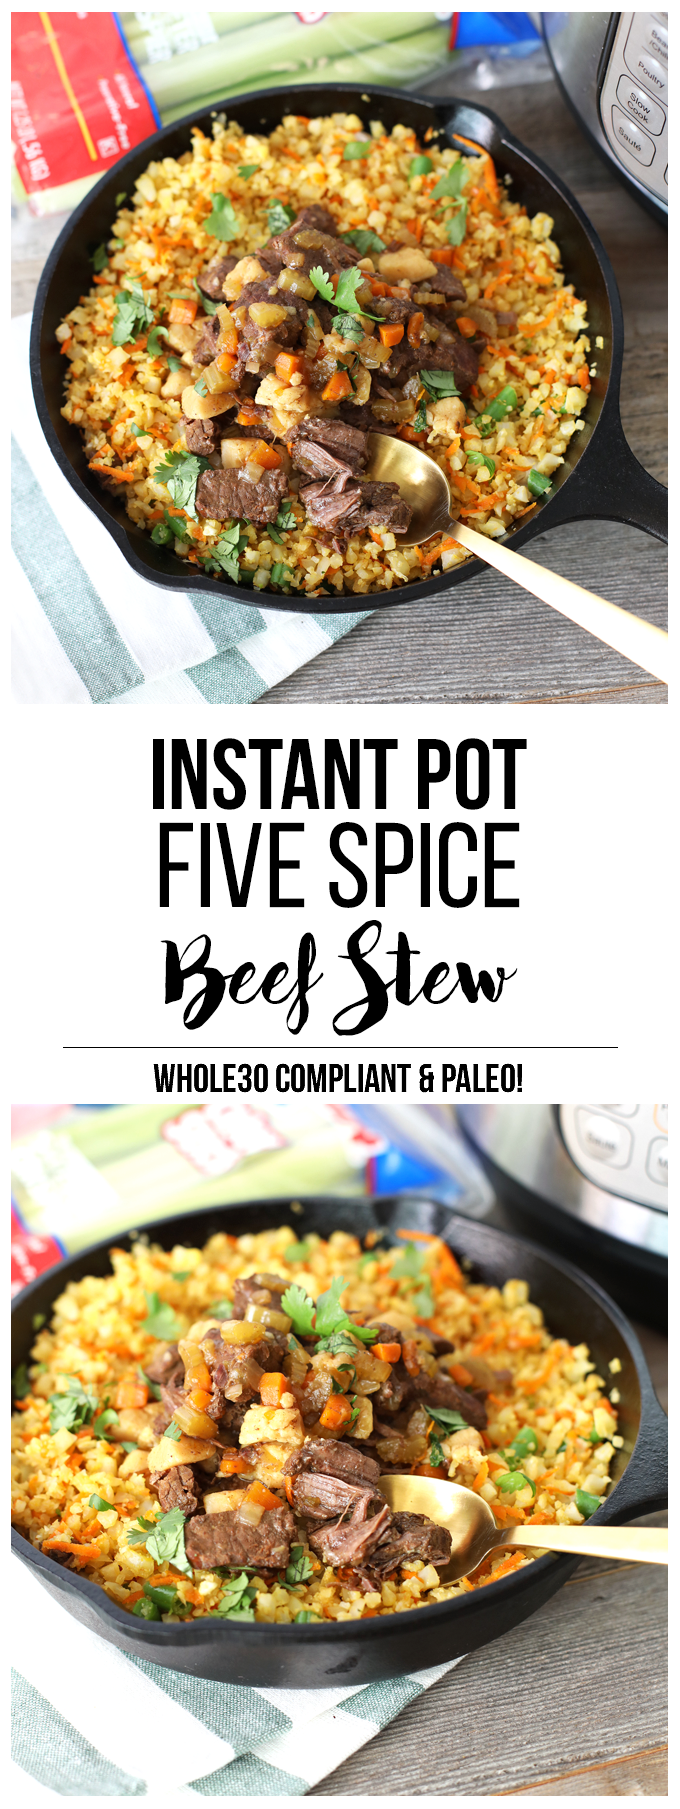 This Instant Pot Five Spice Beef Stew is the perfect way to mix up a comfort food classic! It is Whole30 and Paleo - perfect for the whole family!